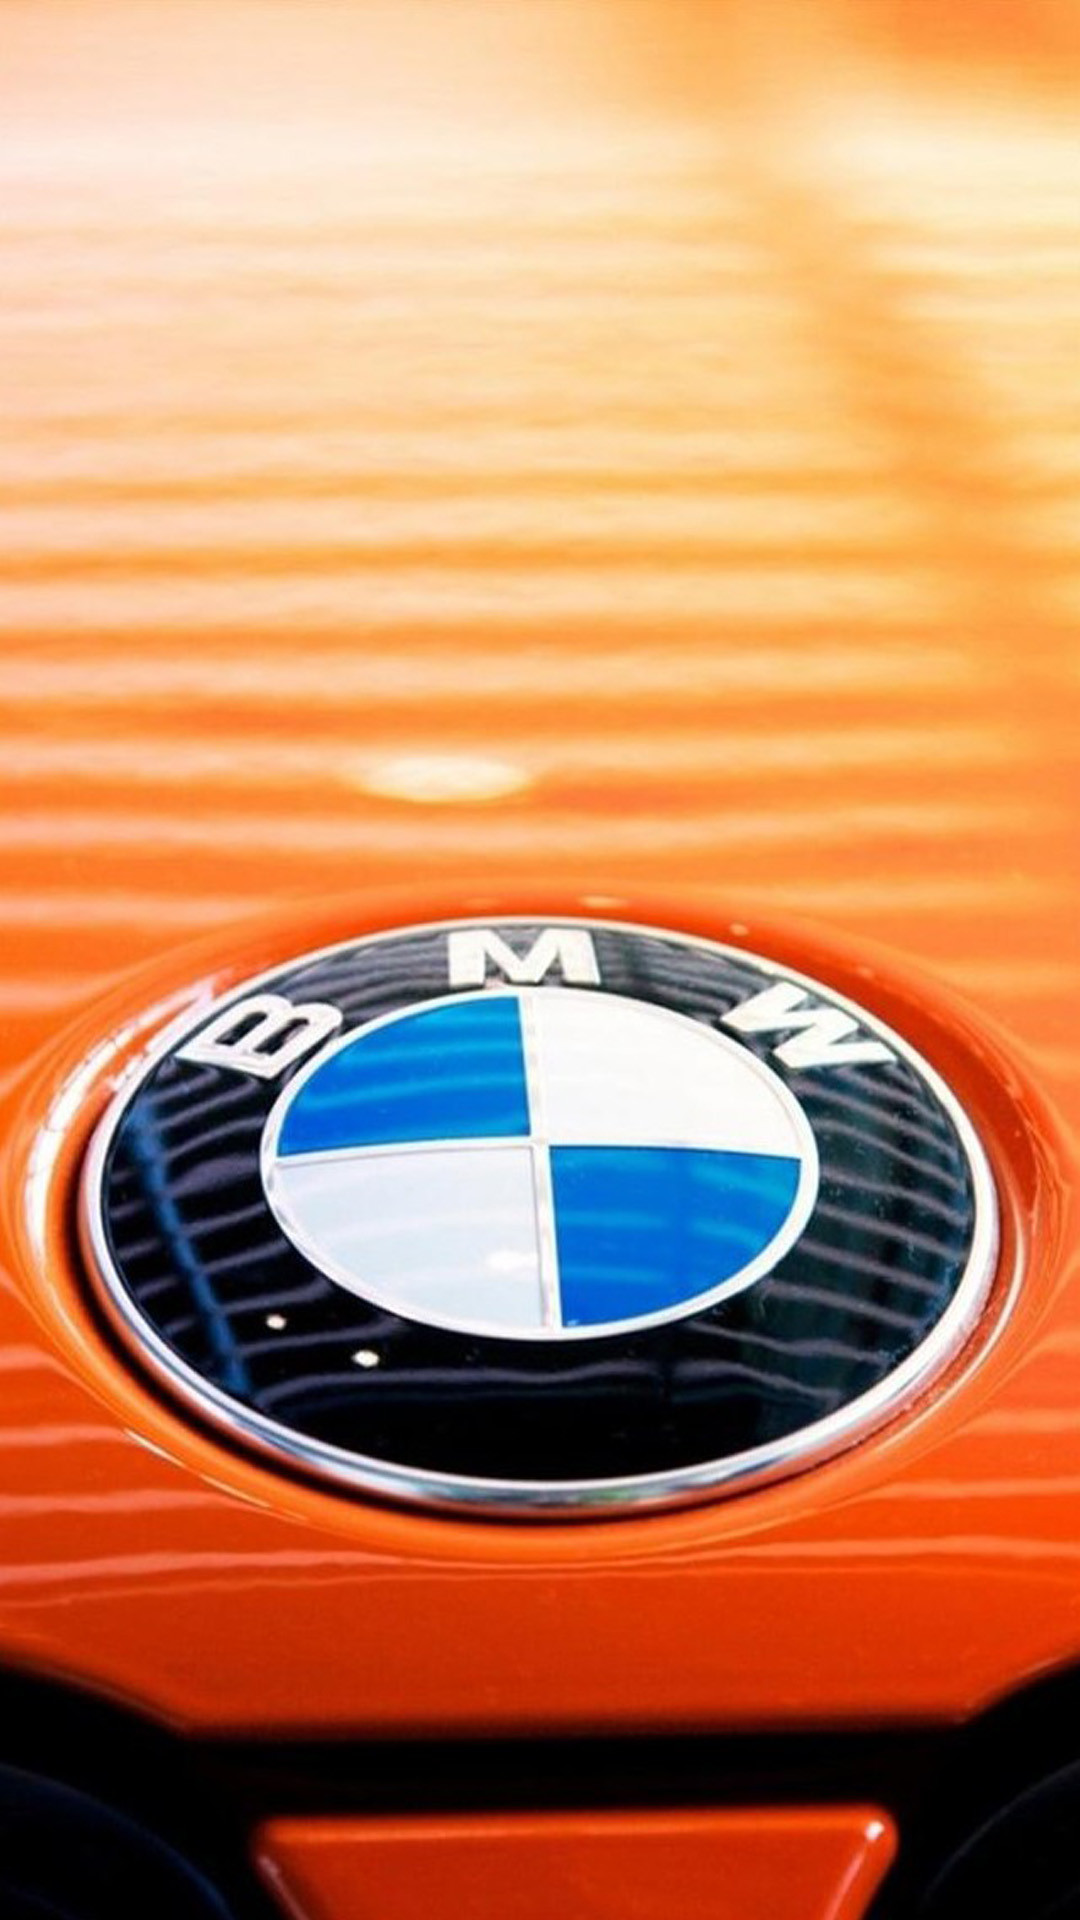 Bmw Logo Hd Wallpapers High Resolution Cars Wallpaper